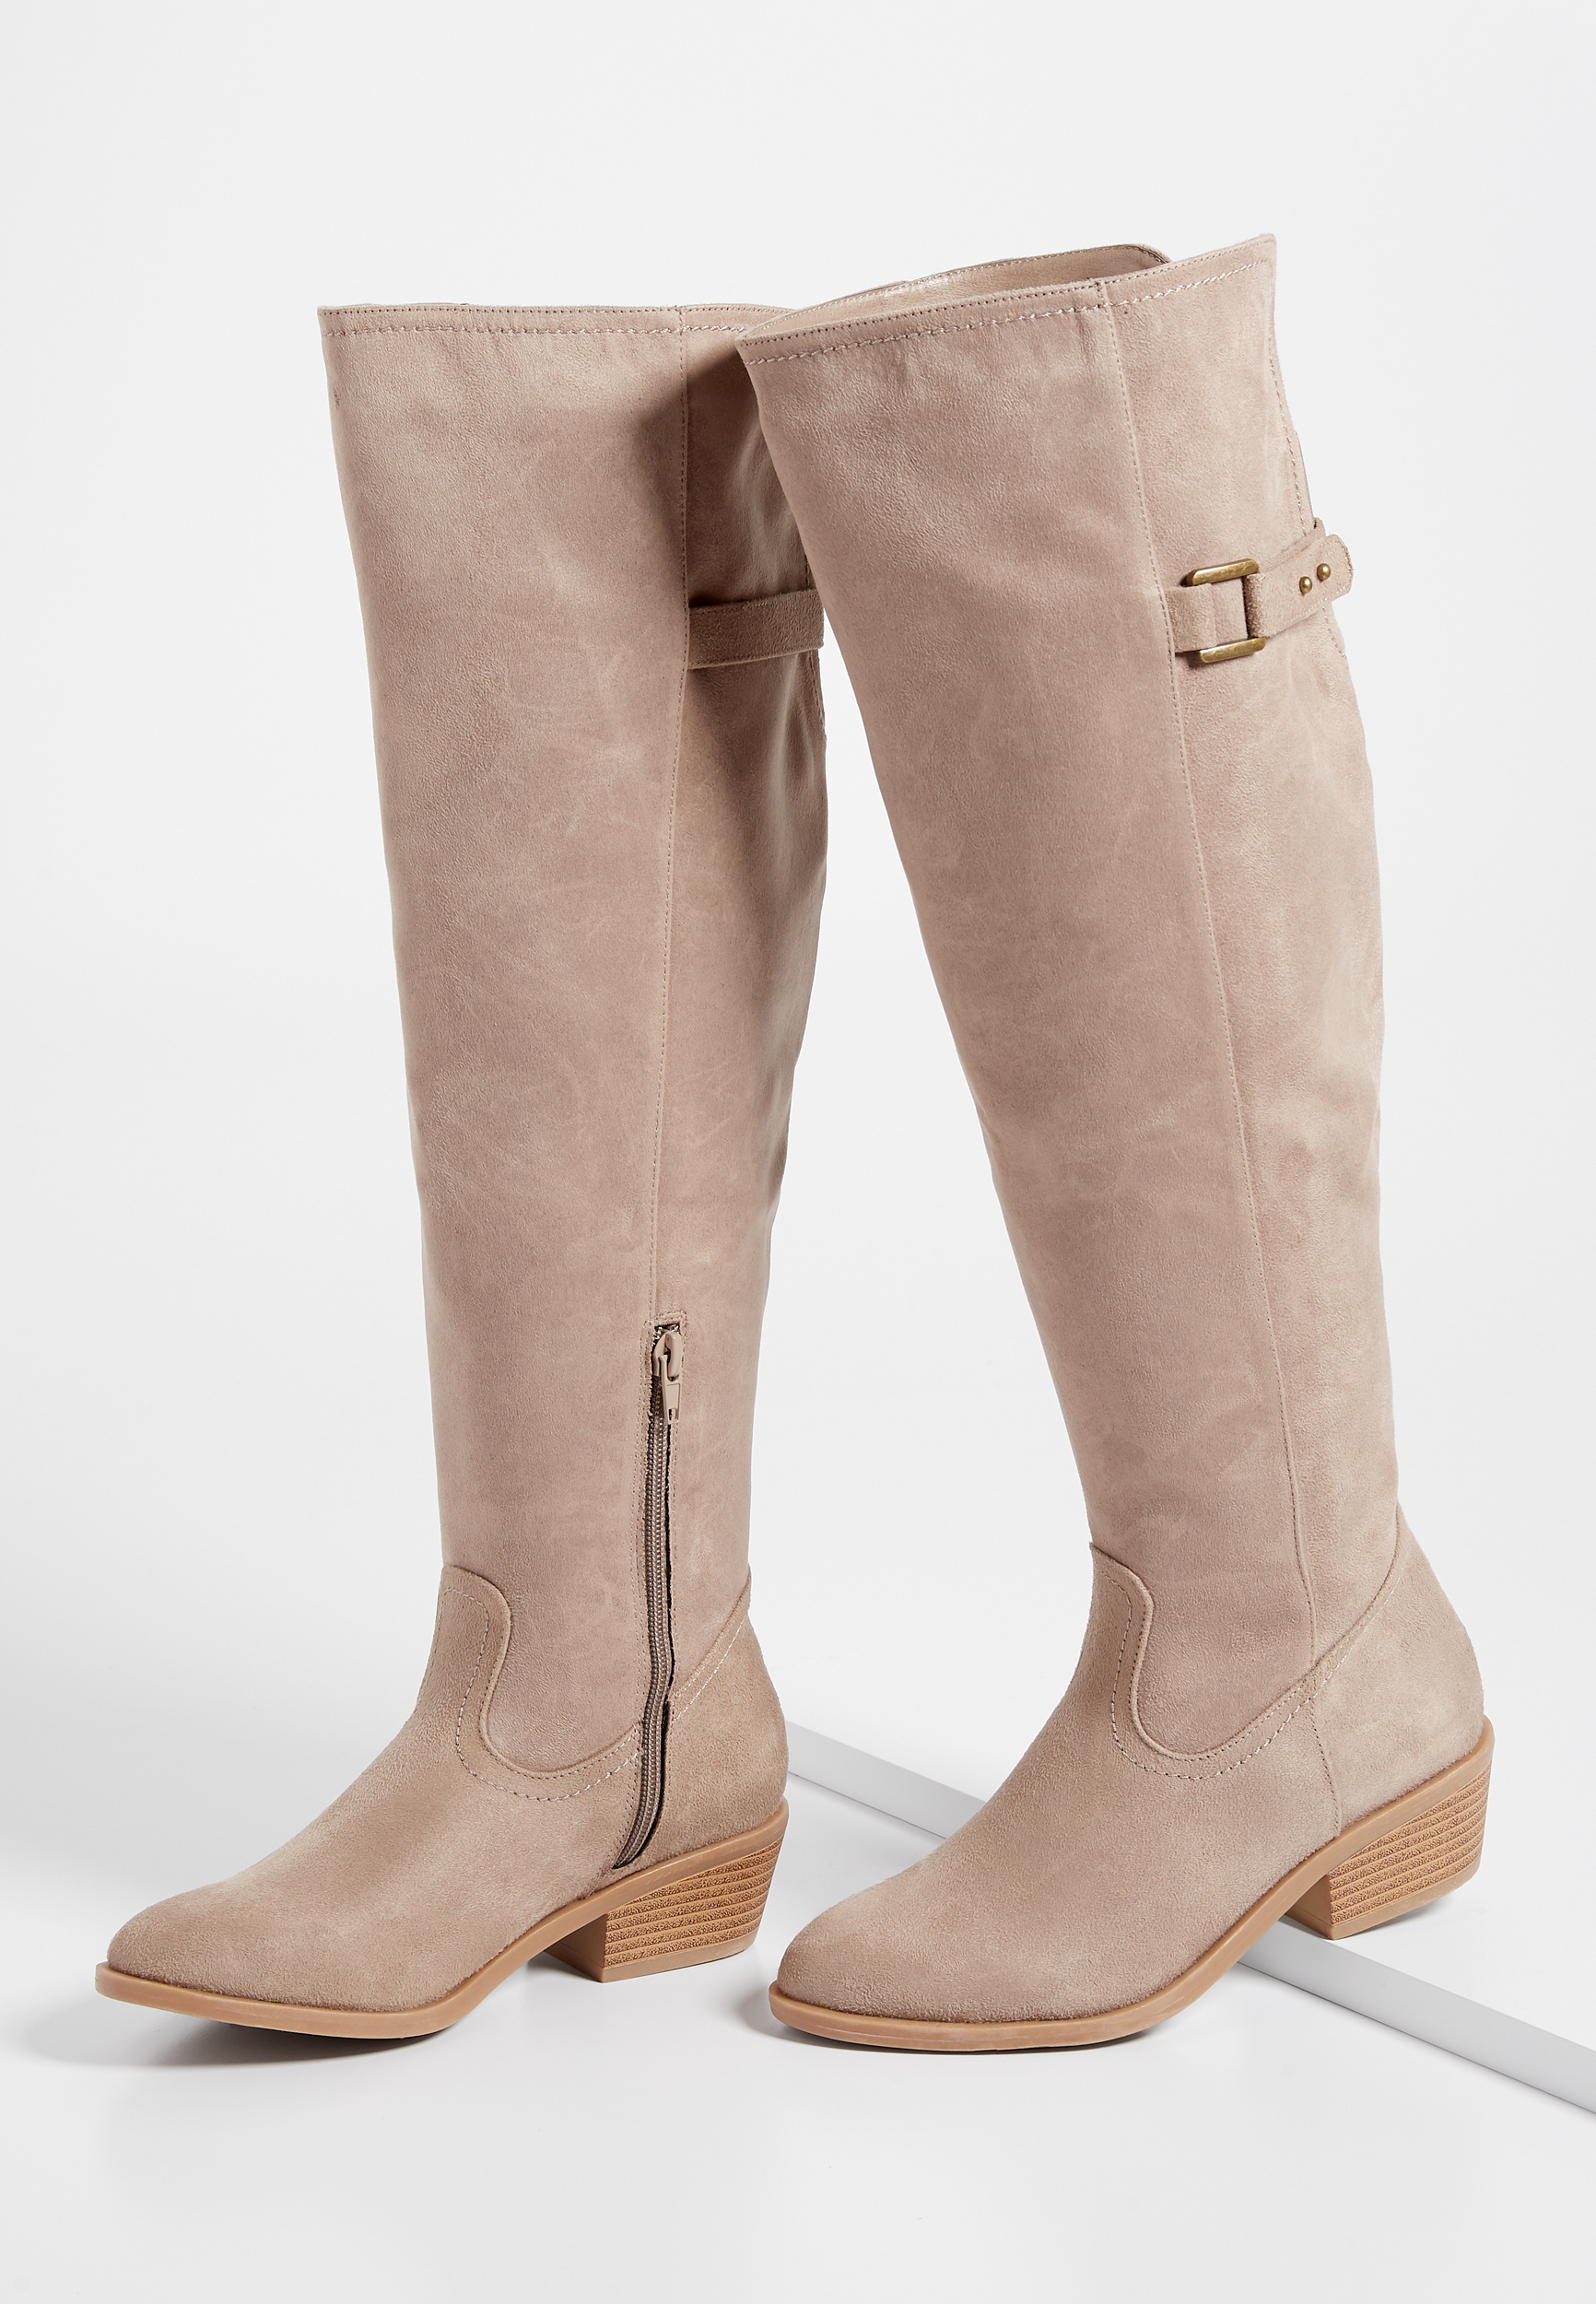 Maurices Emily Buckle Tall Riding Boot